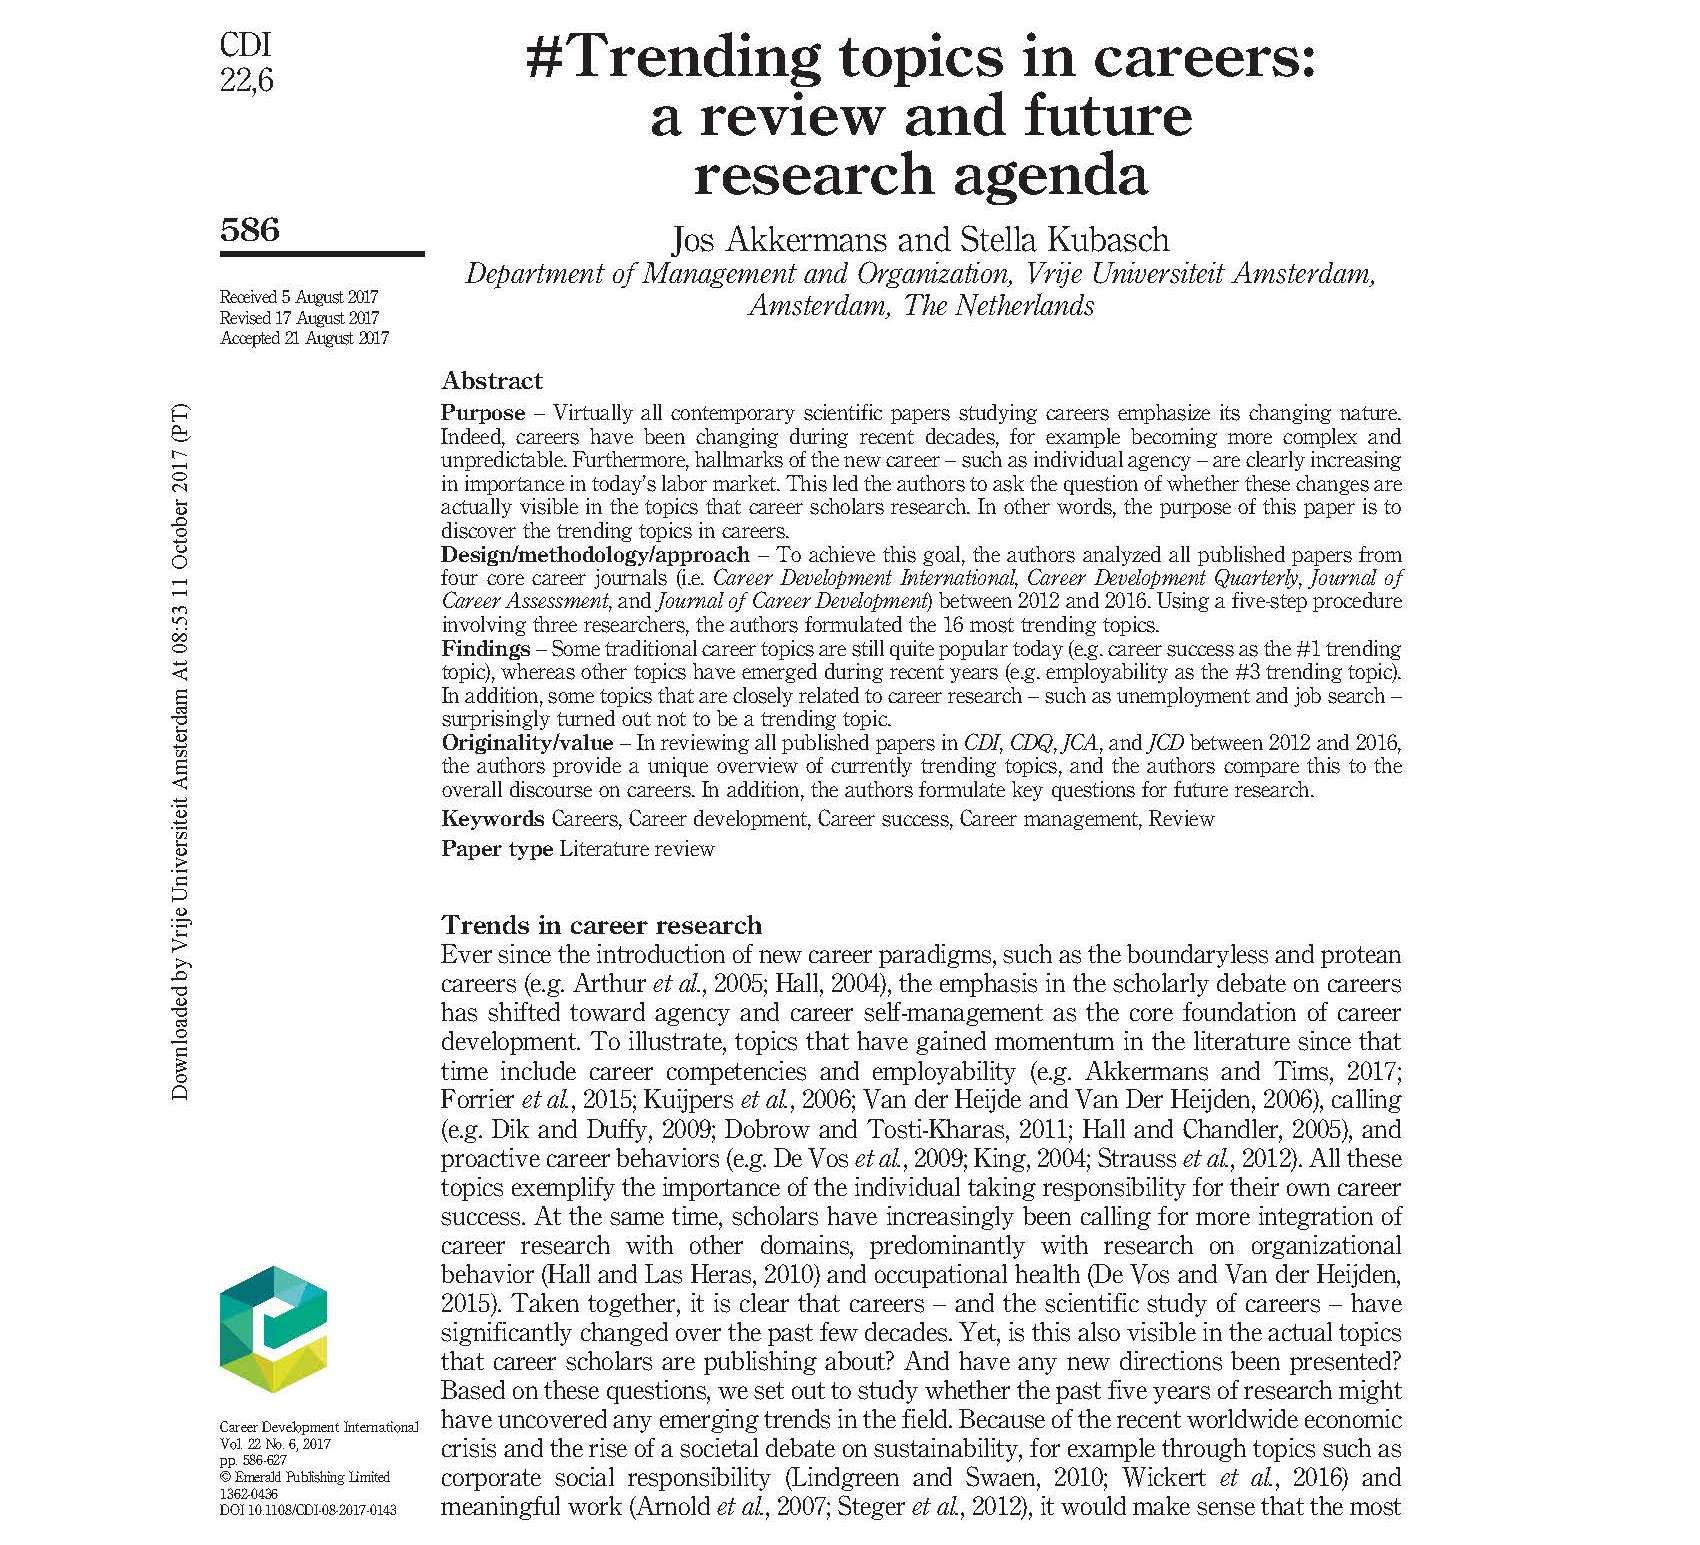 022 59e096d33a29650001209782 1620 20akkermans202620kubasch20201720 20trending20topics20in20careers Research Paper Topics For Impressive Papers 7th Grade Hot In Computer Science Biology High School Students Full